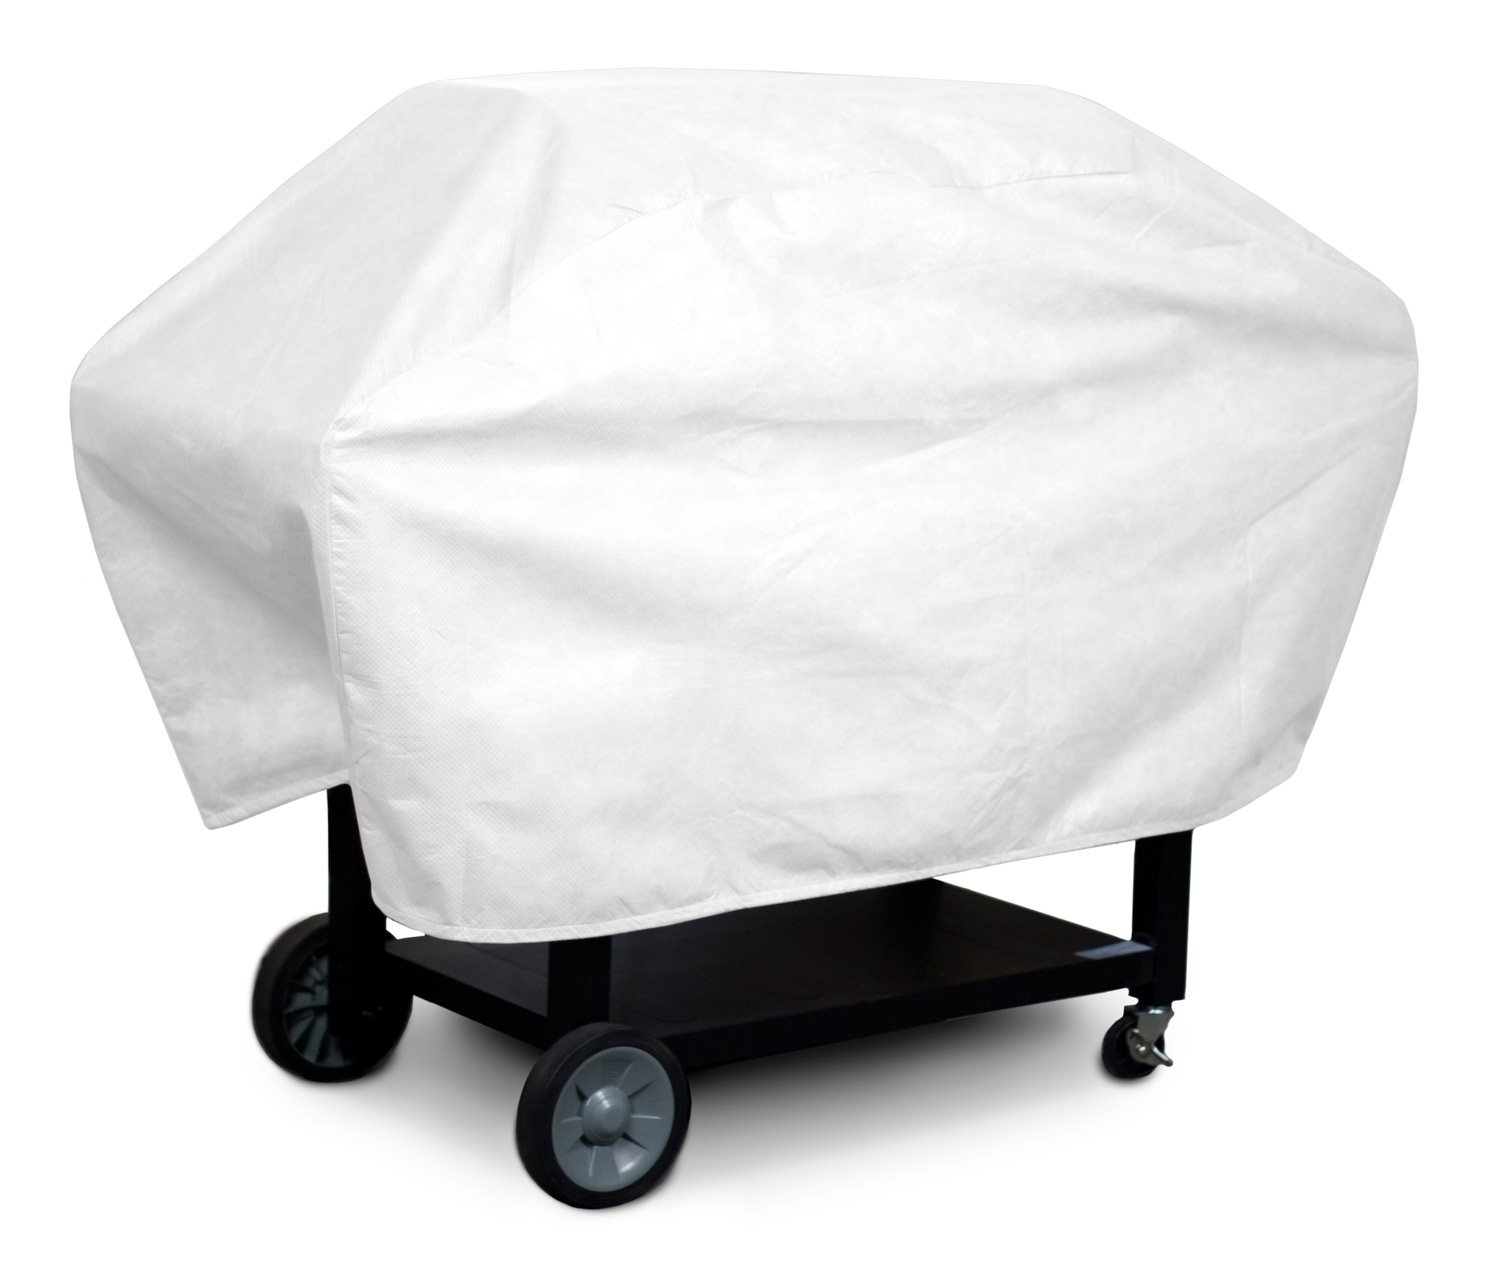 amazoncom koverroos dupont tyvek medium barbecue cover 23inch diameter by 53inch width by 35inch height white outdoor grill covers patio - Bbq Covers